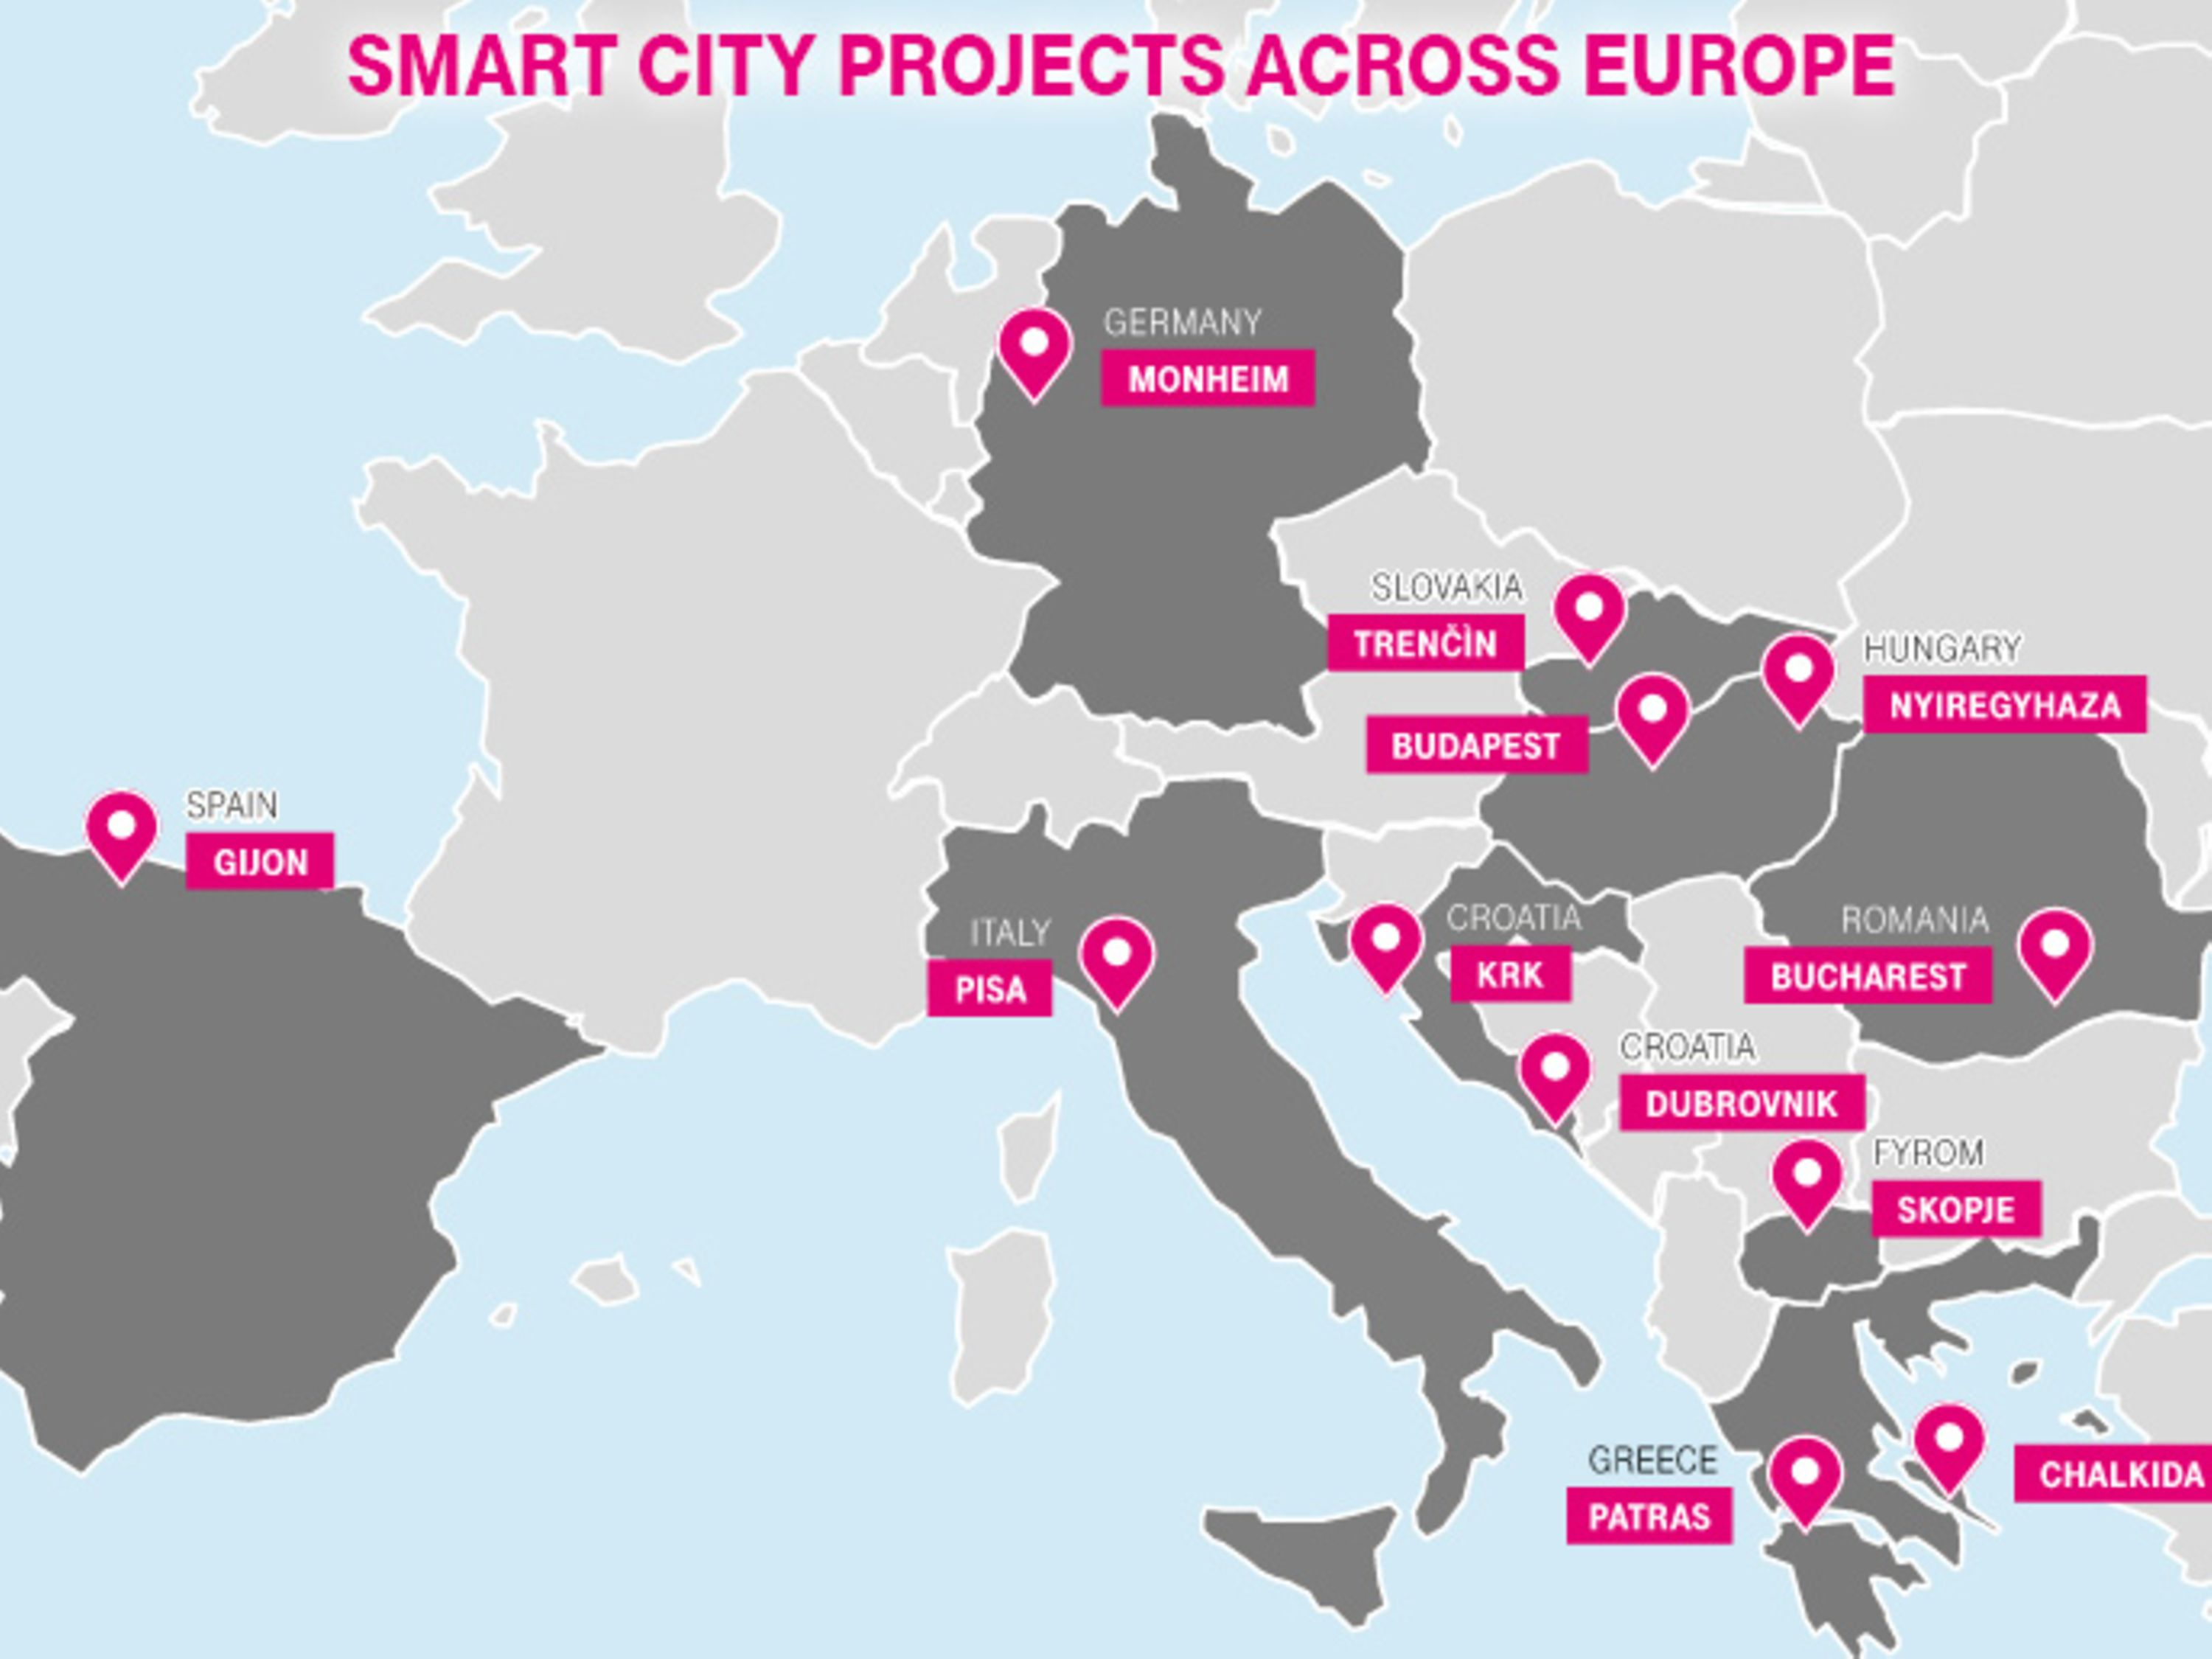 Smart City Projects across Europe